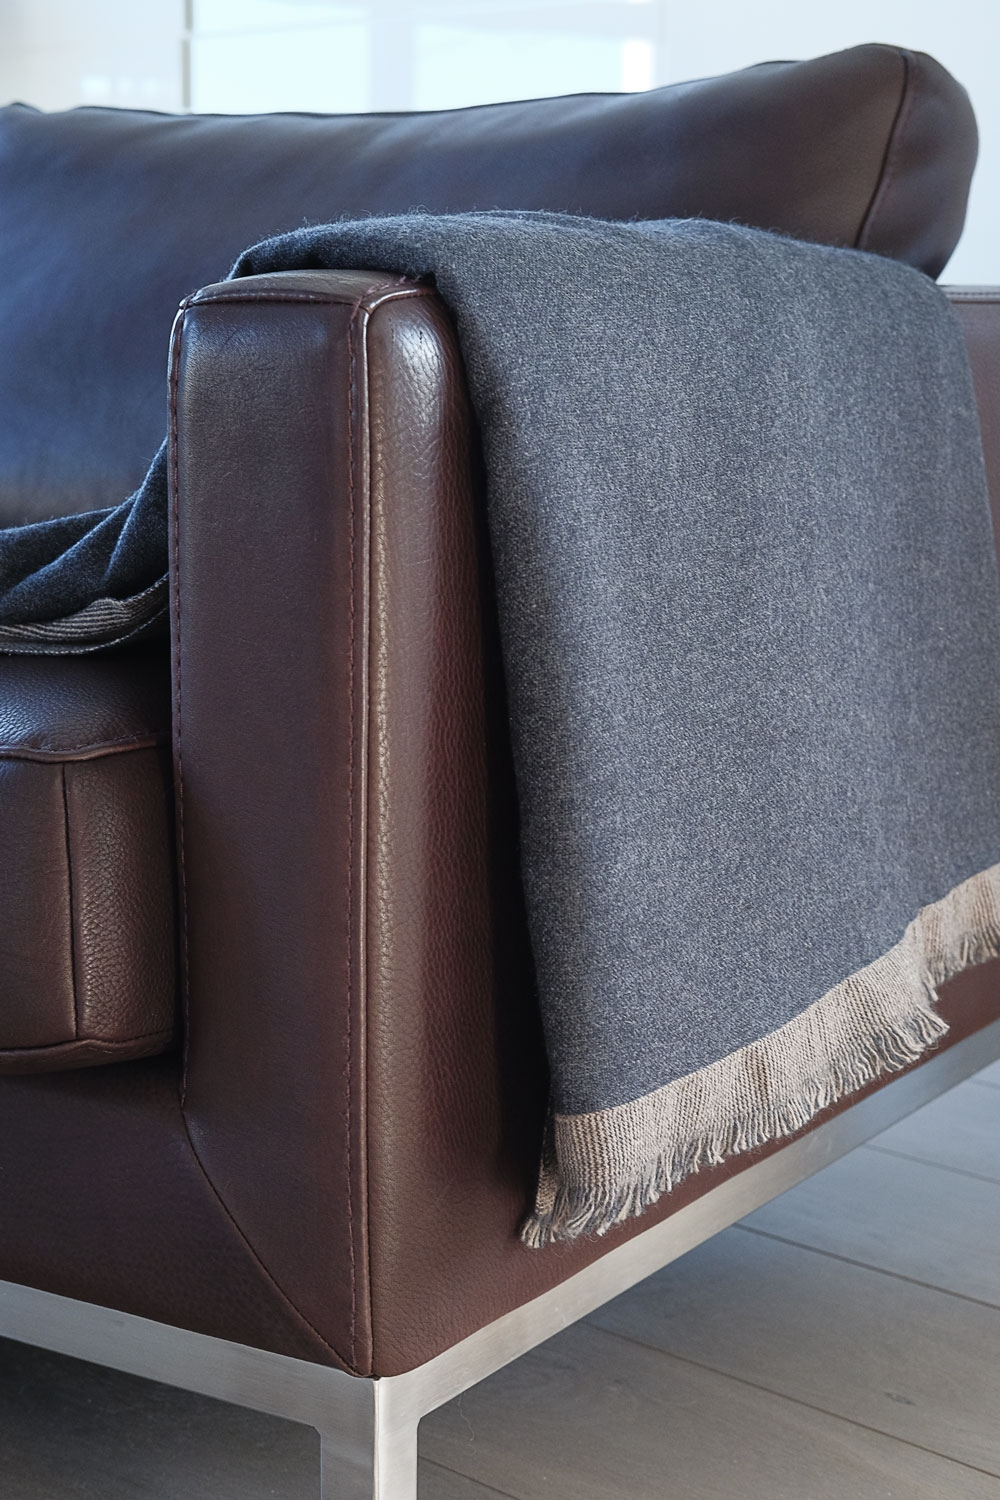 cashmere accessori plaid fougere antracite chine natural brown chine 190 x 130 cm